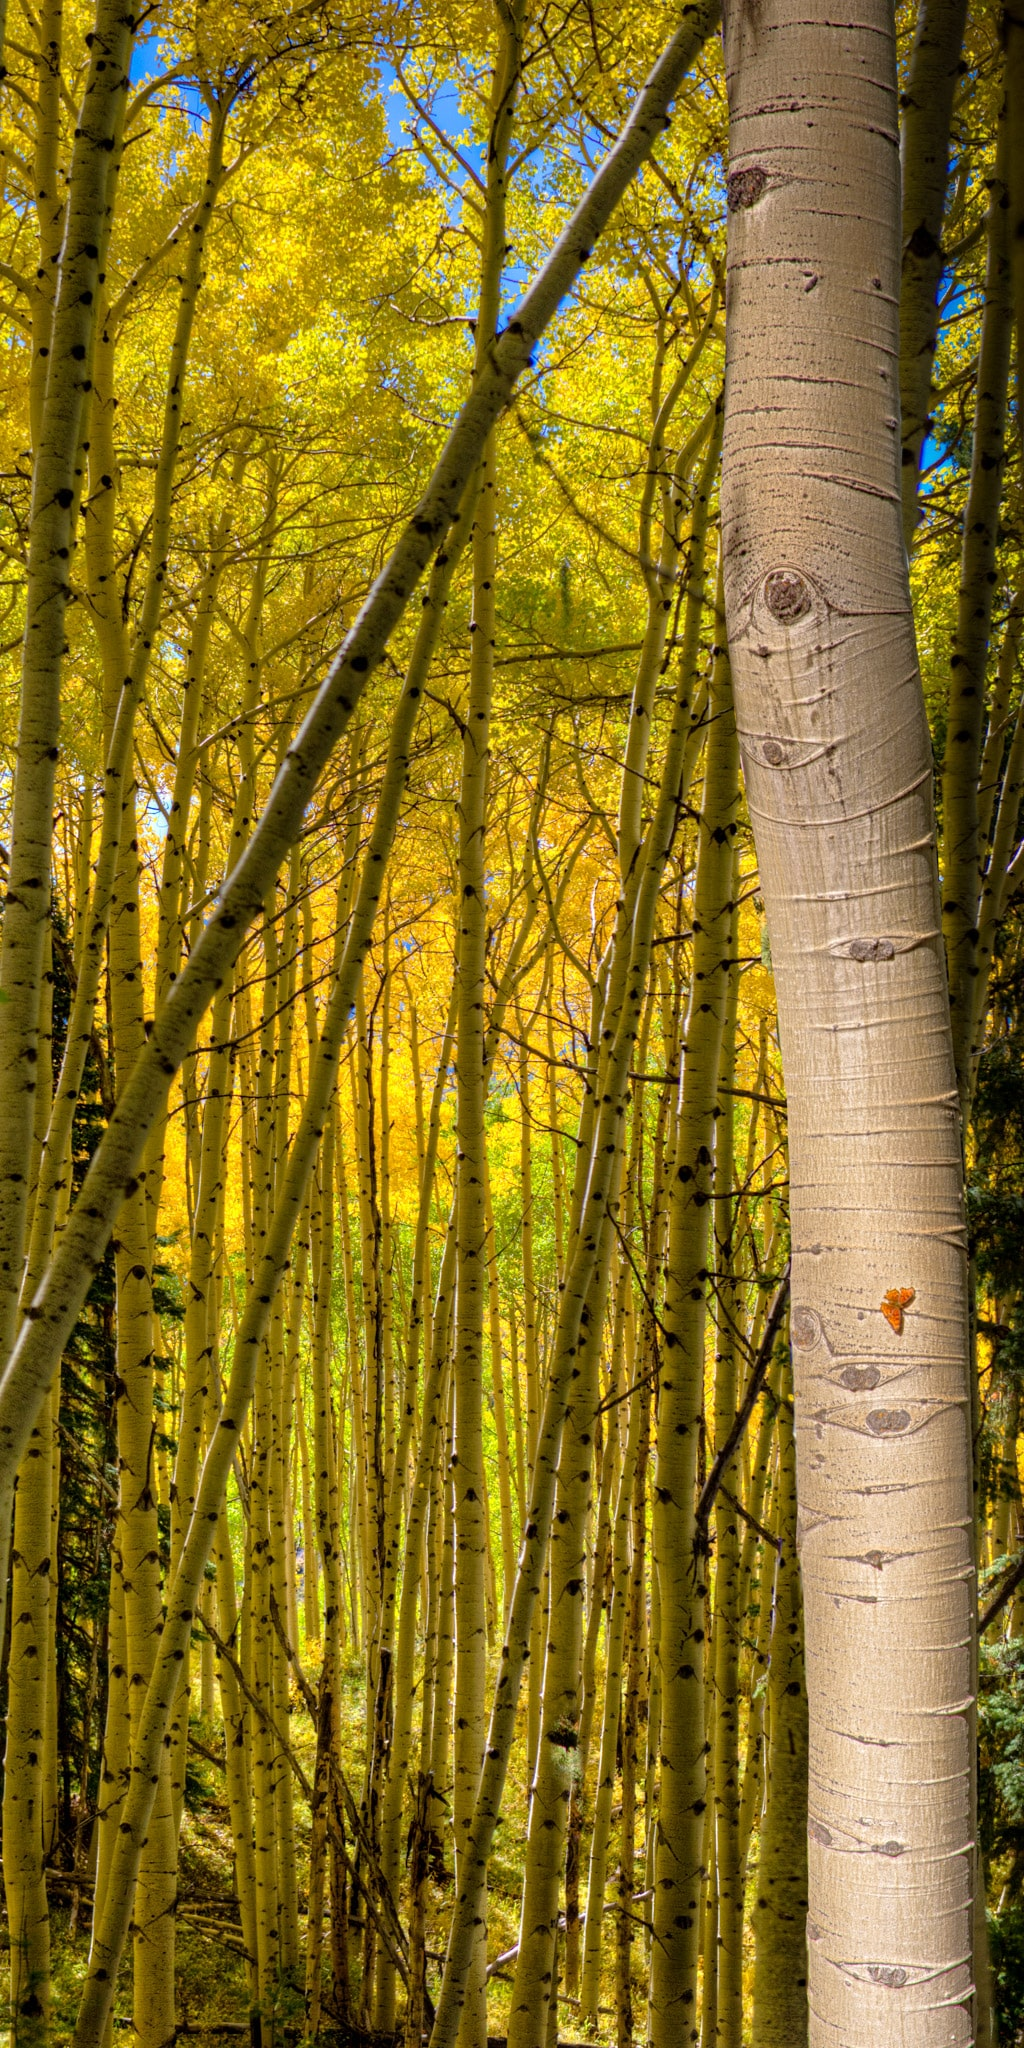 An orange Oreas Comma clings to an aspen bole in an aspen grove in autumn.